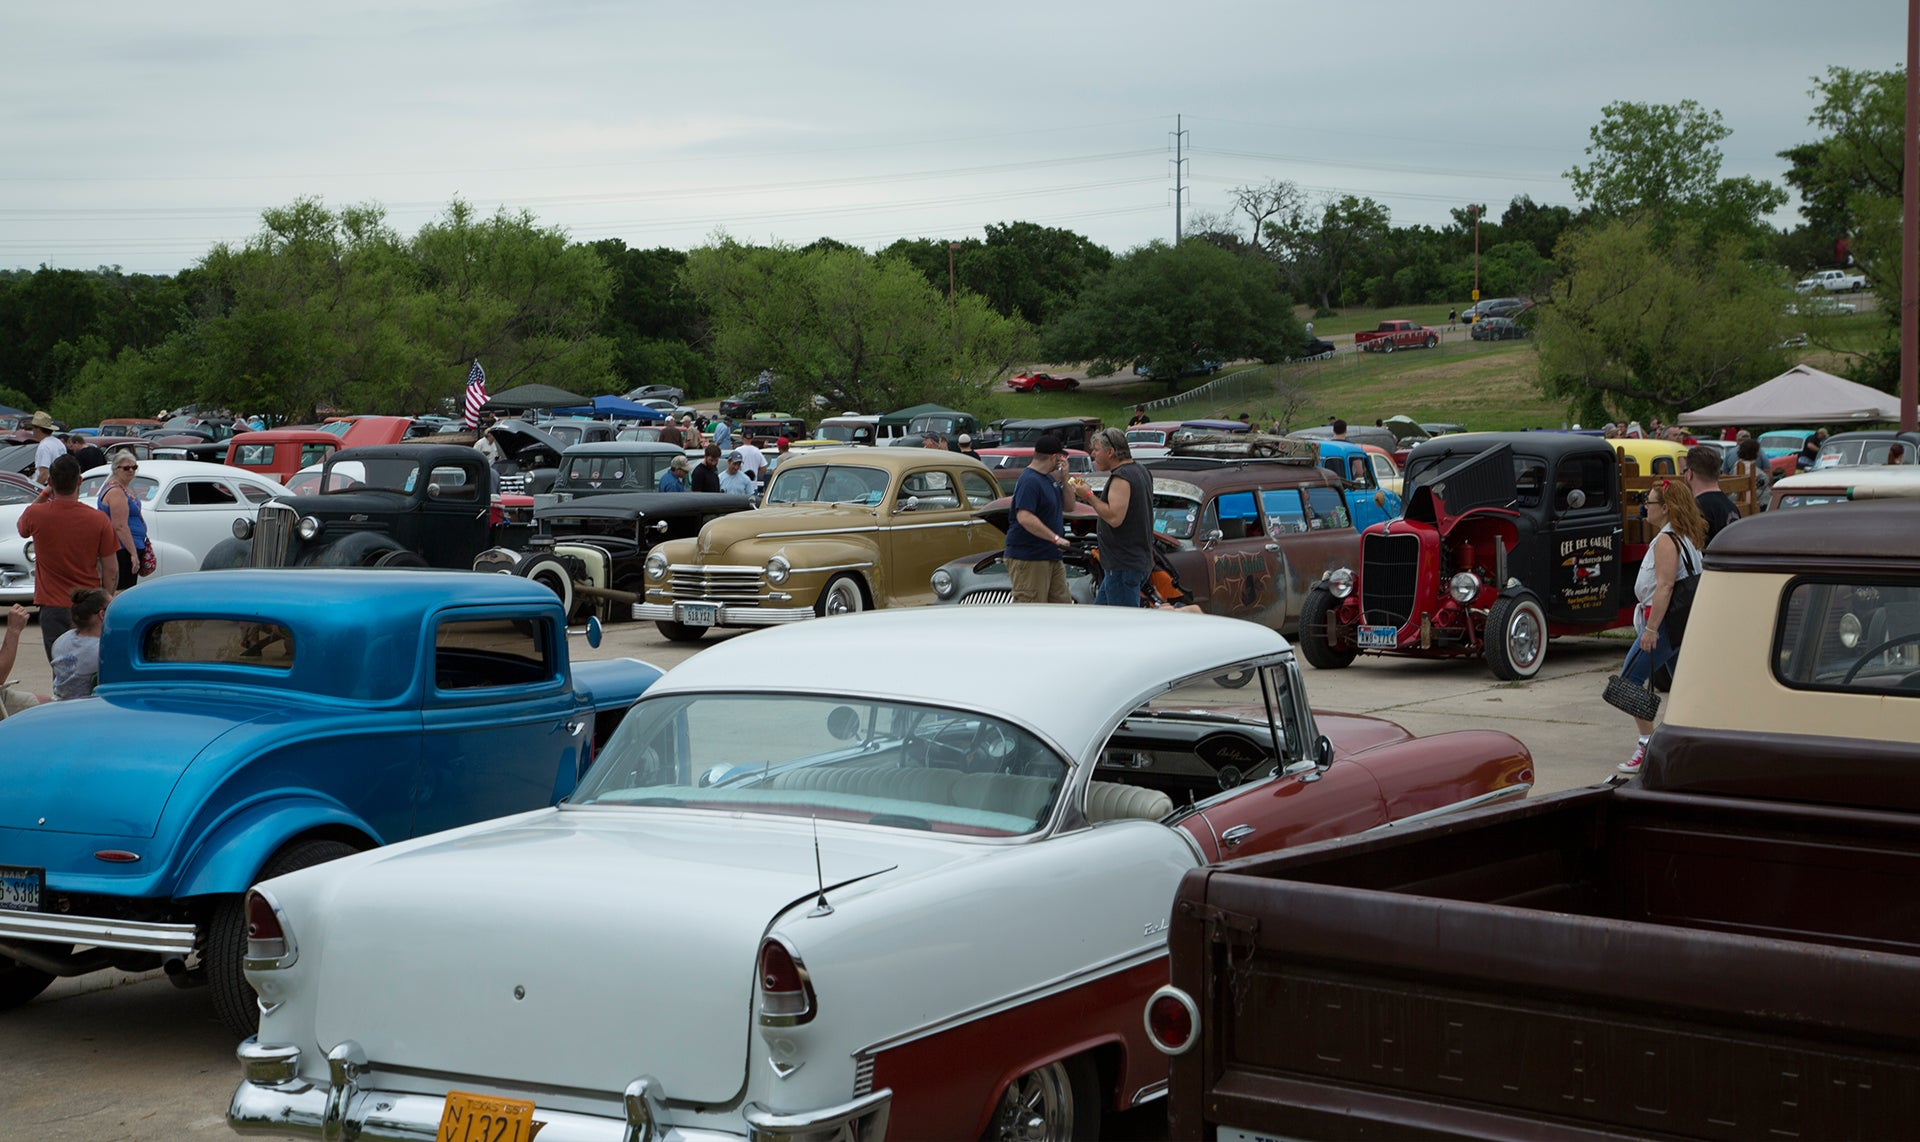 Lonestar sea of cars